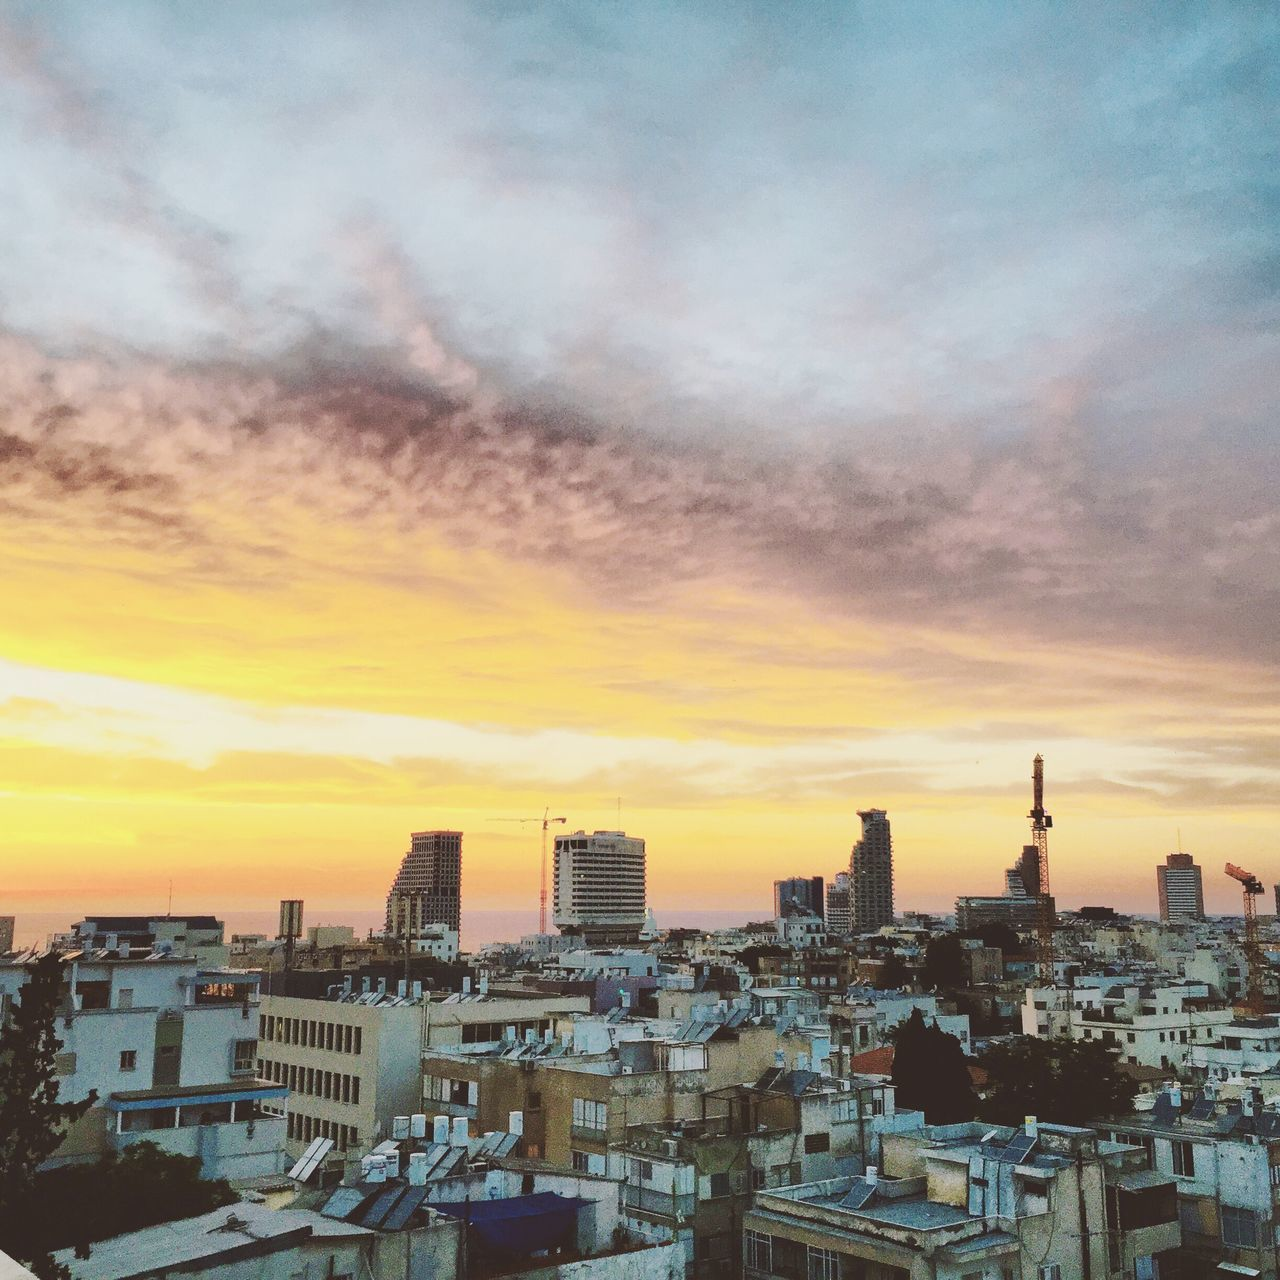 architecture, building exterior, sunset, built structure, cityscape, city, sky, no people, residential building, skyscraper, cloud - sky, outdoors, modern, travel destinations, urban skyline, nature, day